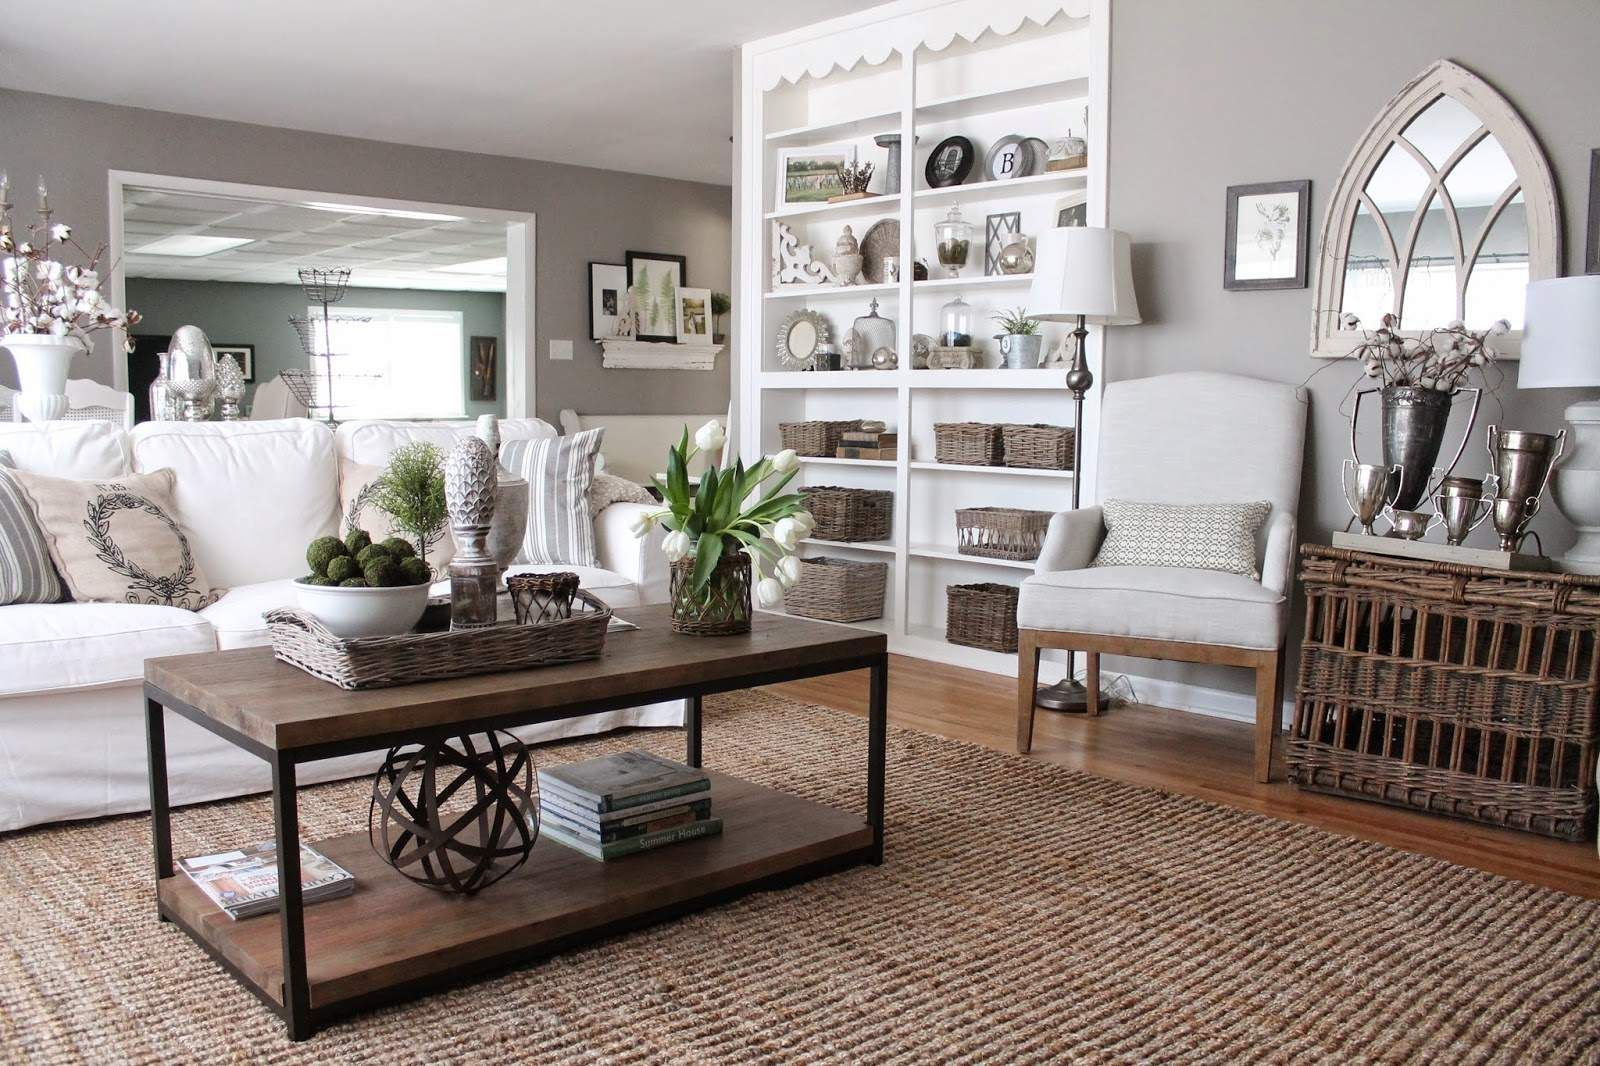 Wallpaper And Paint Living Room Taupe Paint Colors Living Room Http Hdwallpaperinfo Taupe